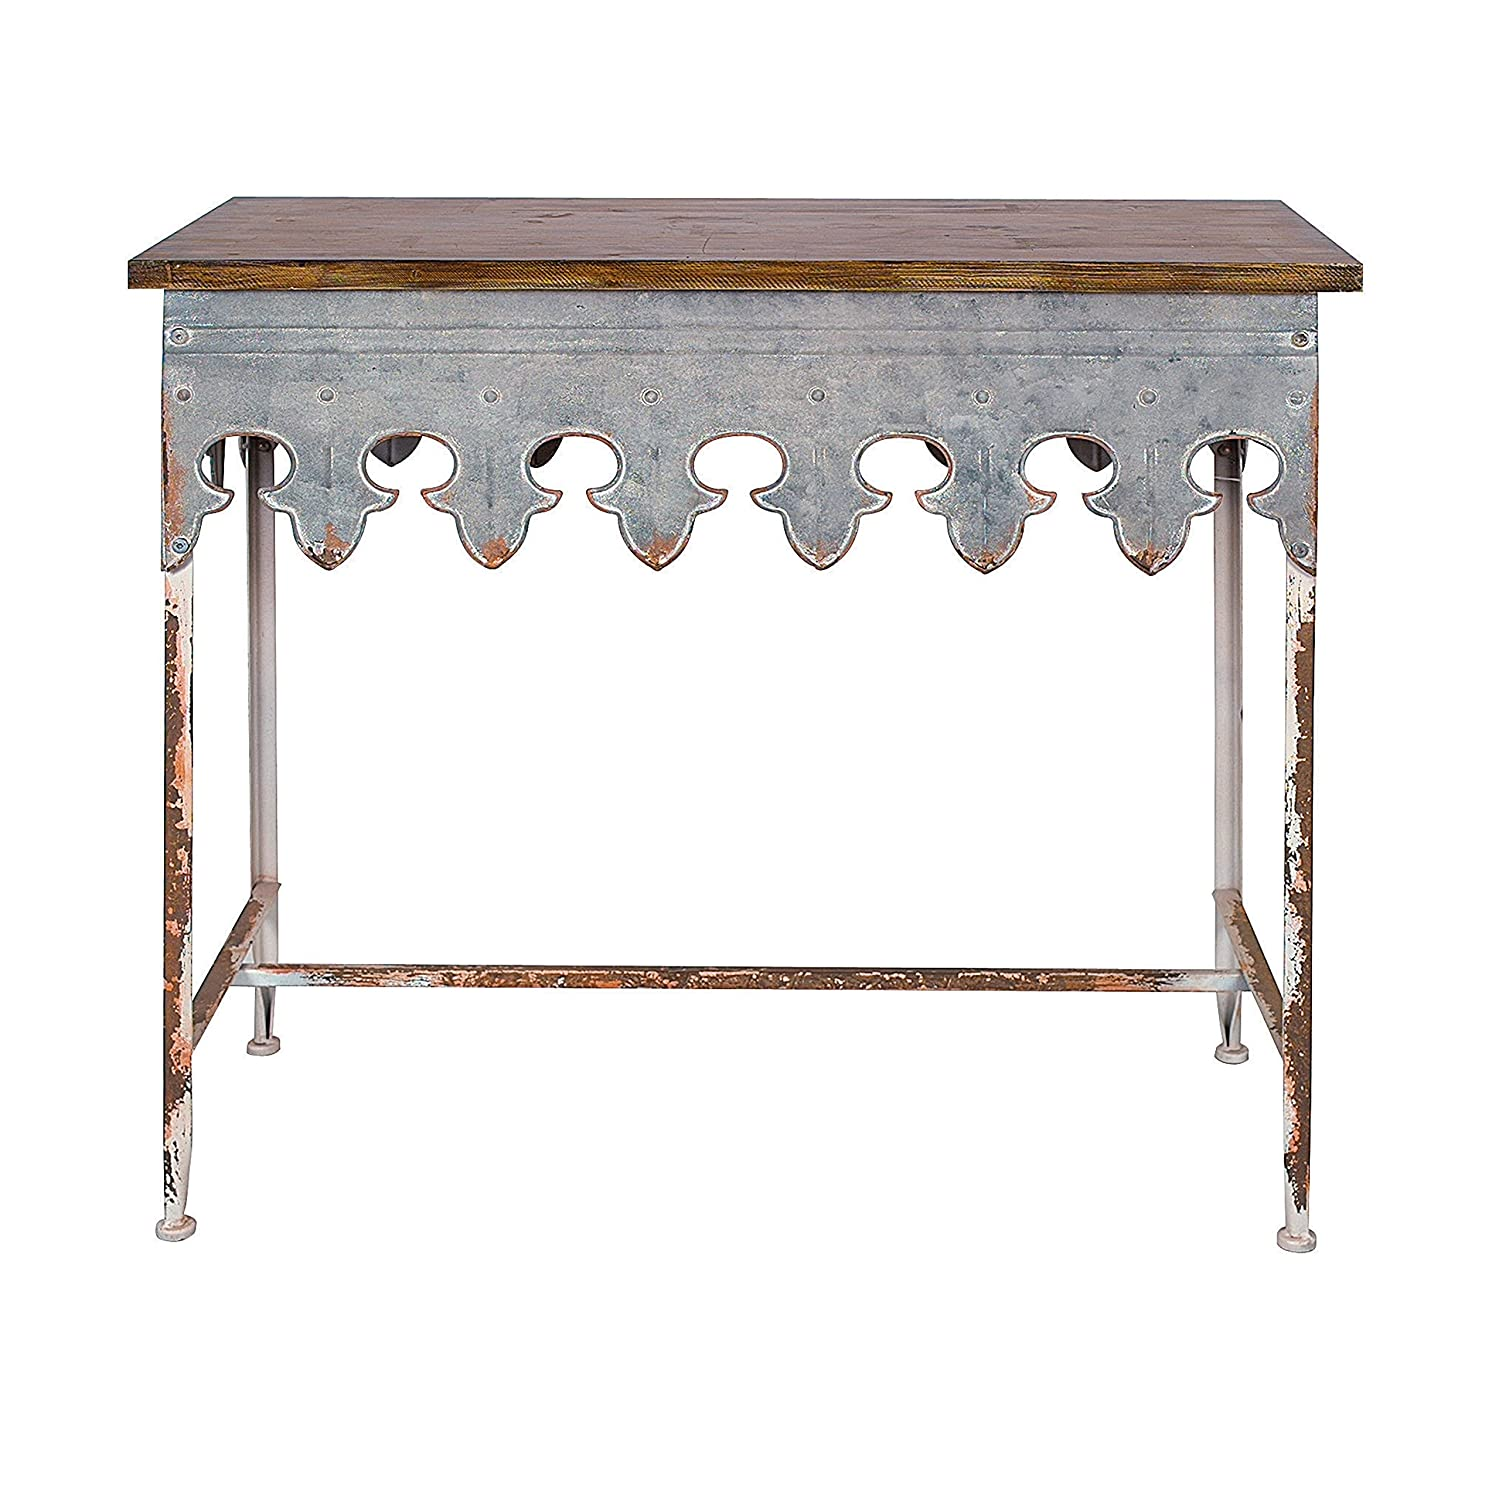 Farmhouse style rustic distressed zinc metal table with scalloped edge.